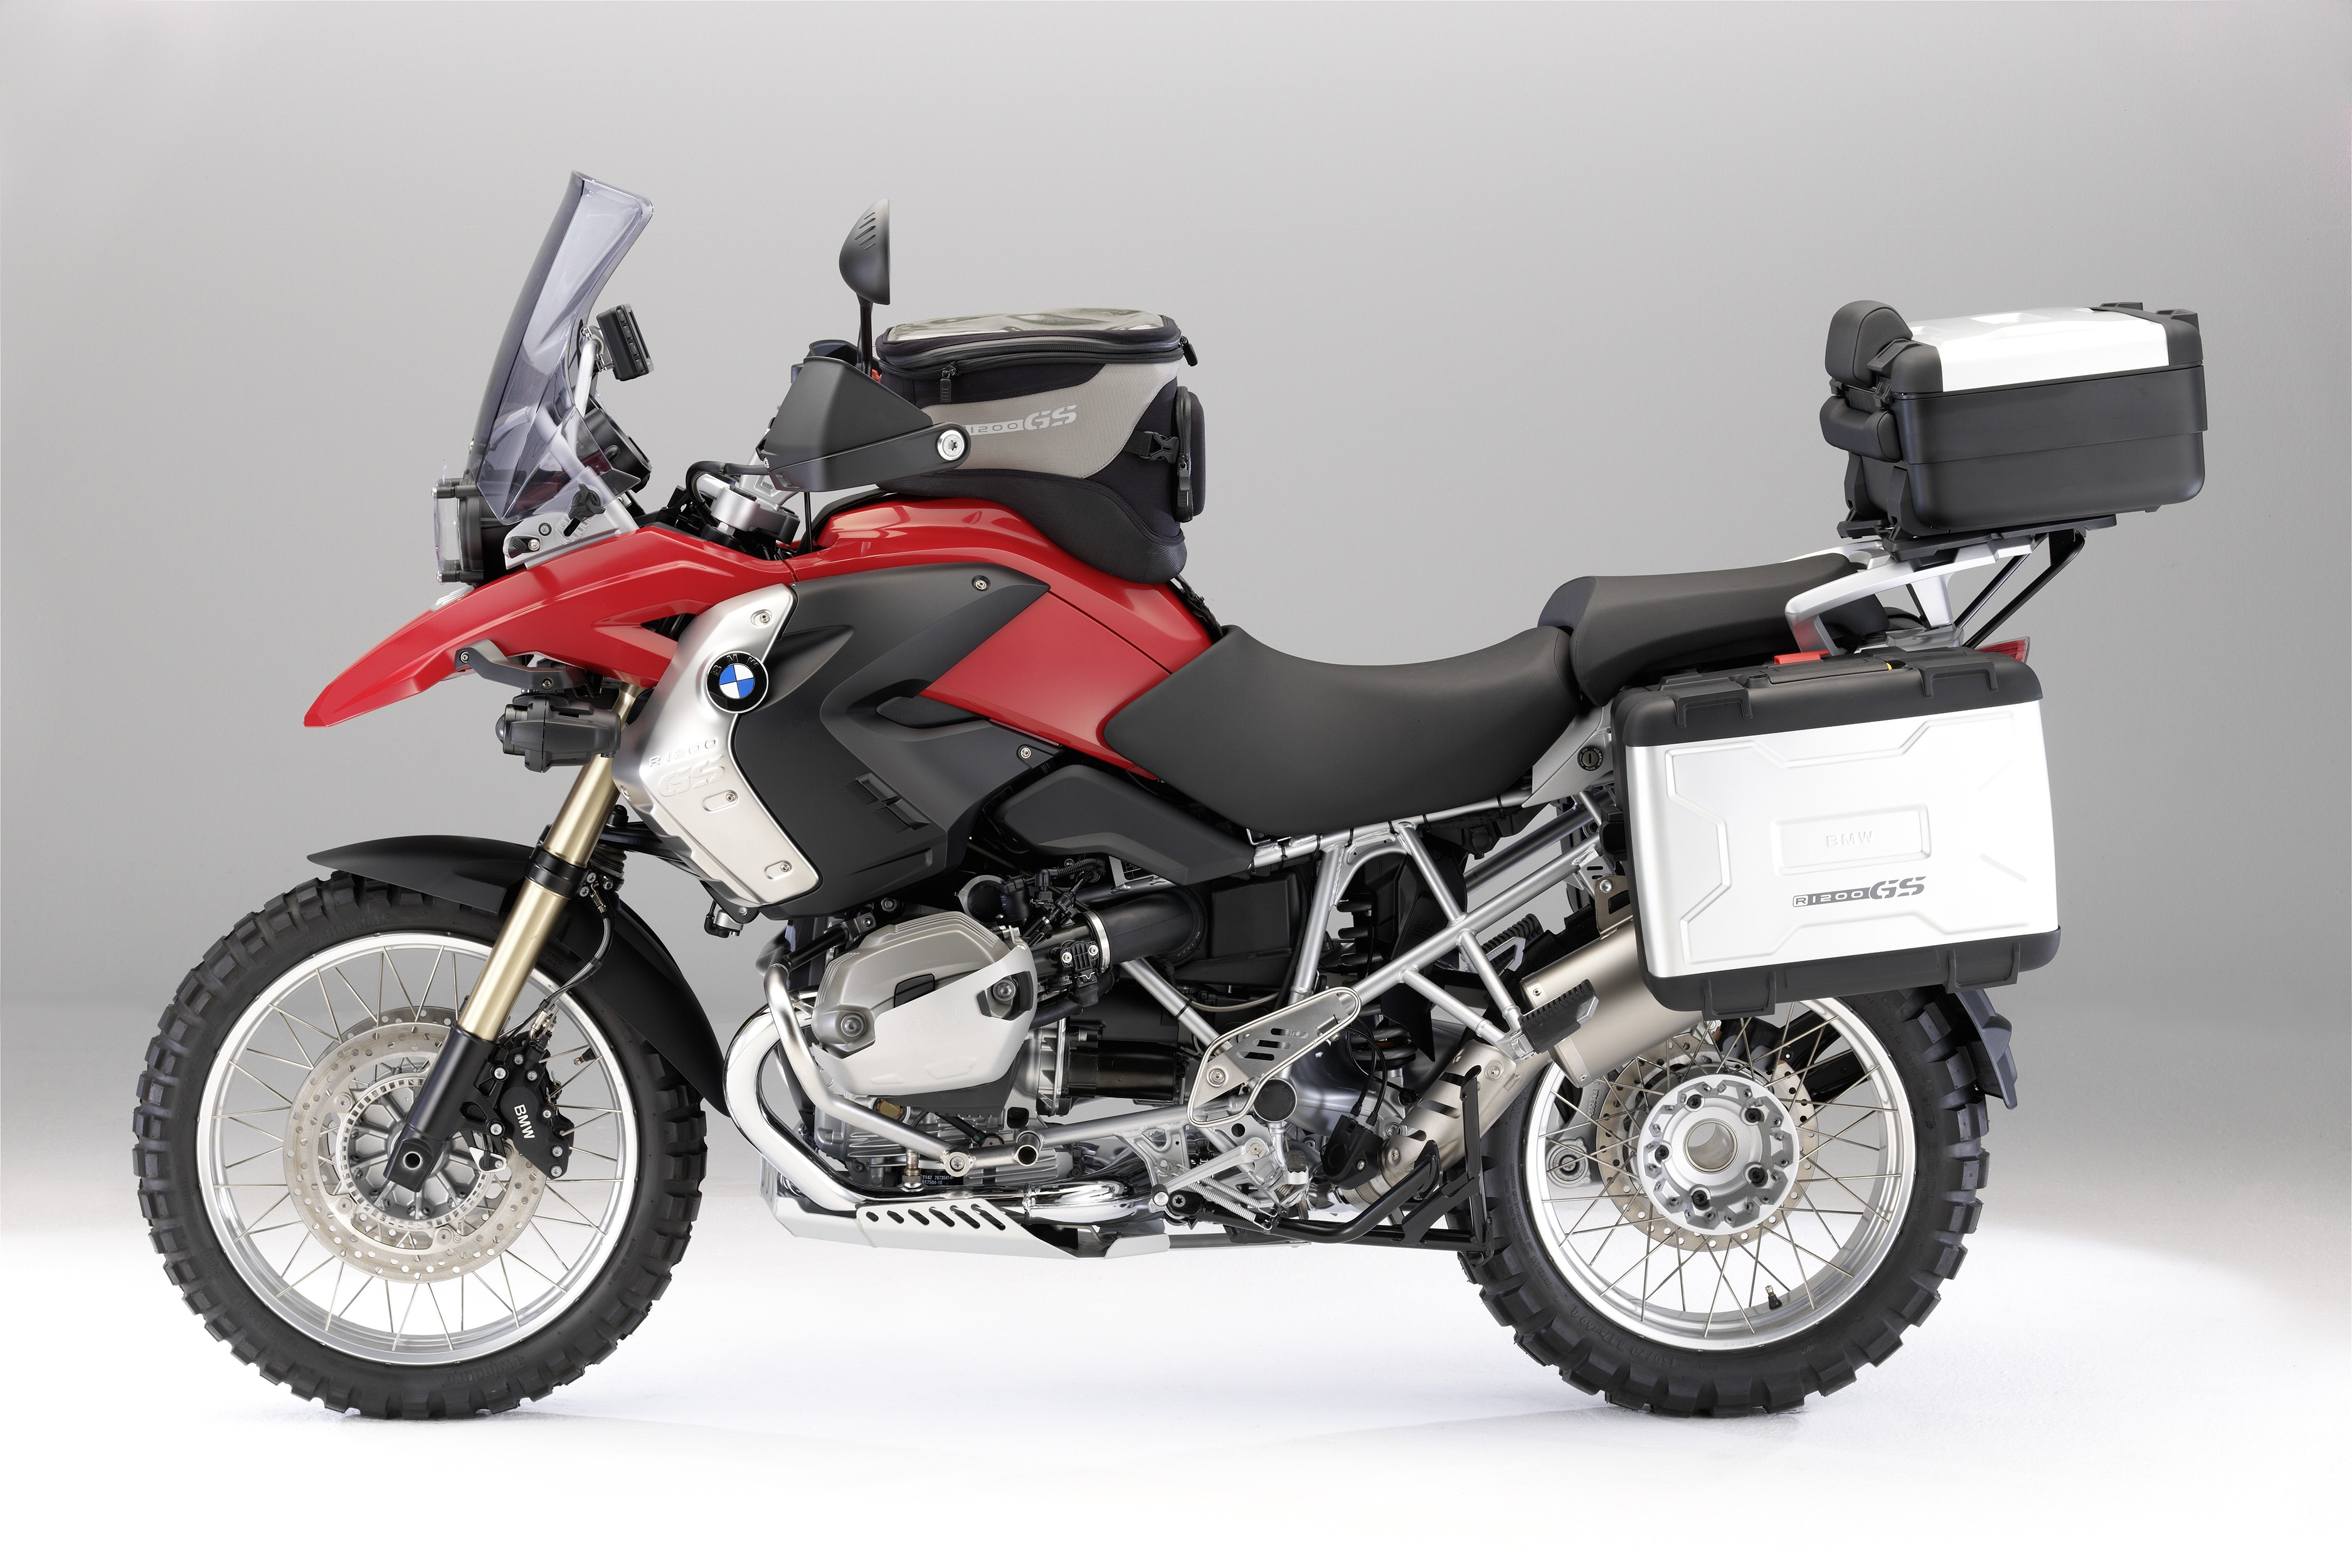 2010 BMW R 1200 GS / Adventure Review - Top Speed